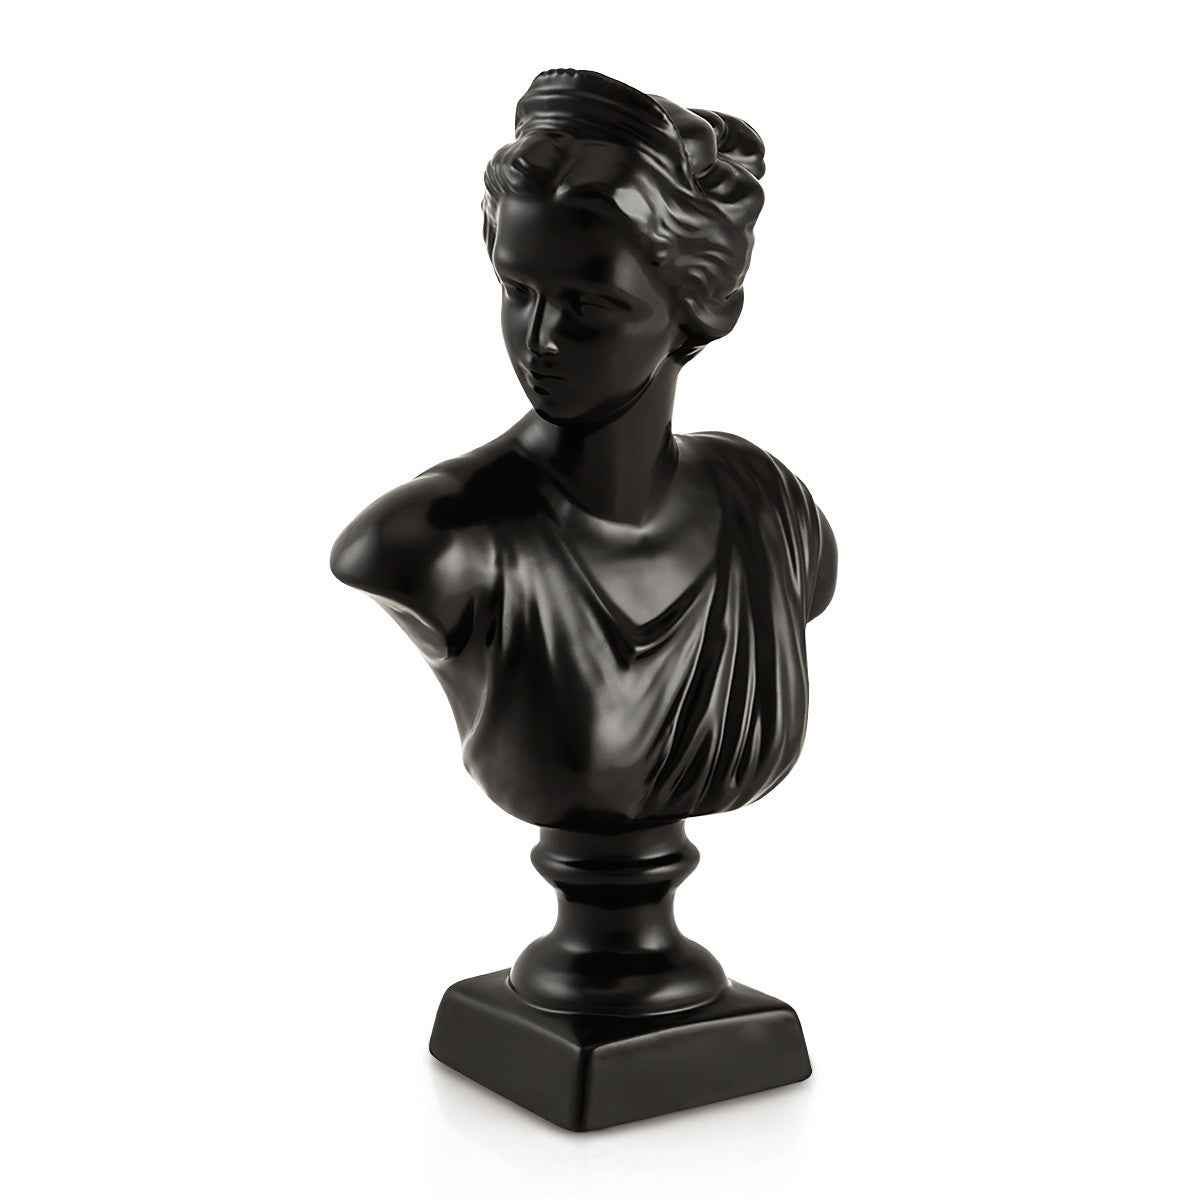 Hand-painted ceramic porcelain Venus bust finished in Black opaque color